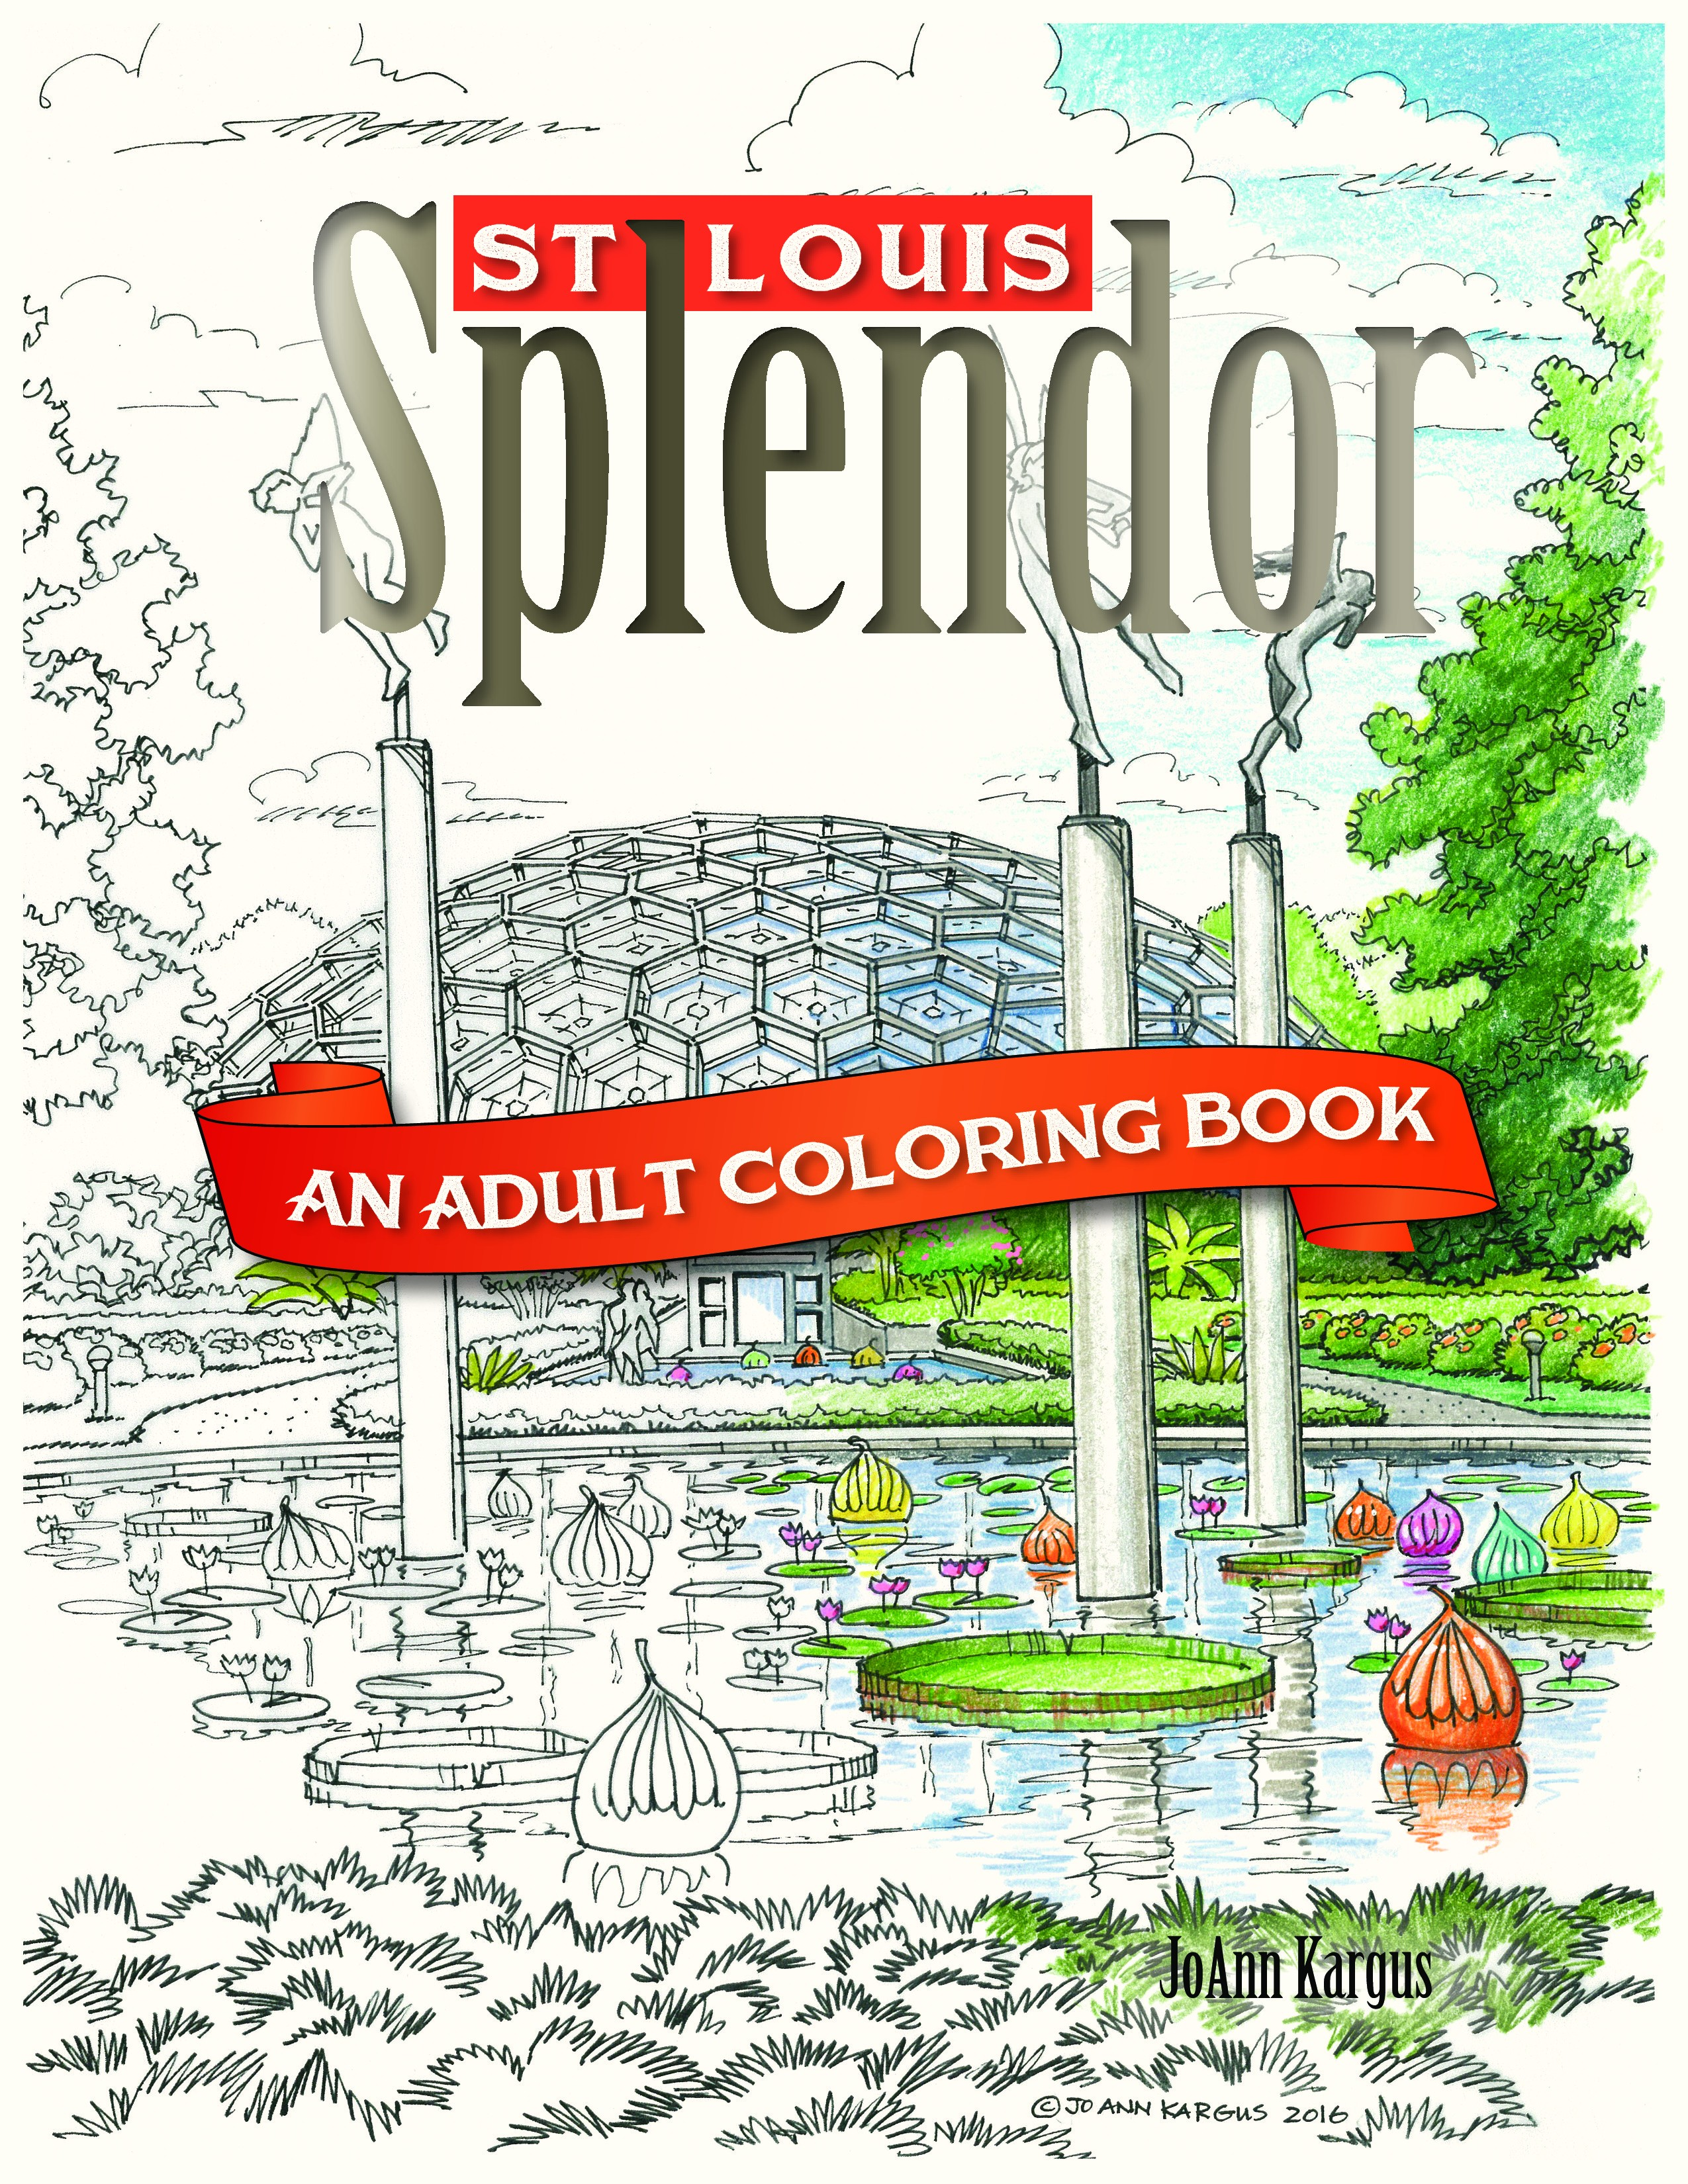 New Adult Coloring Book Shows the Beauty of St. Louis Architecture ...